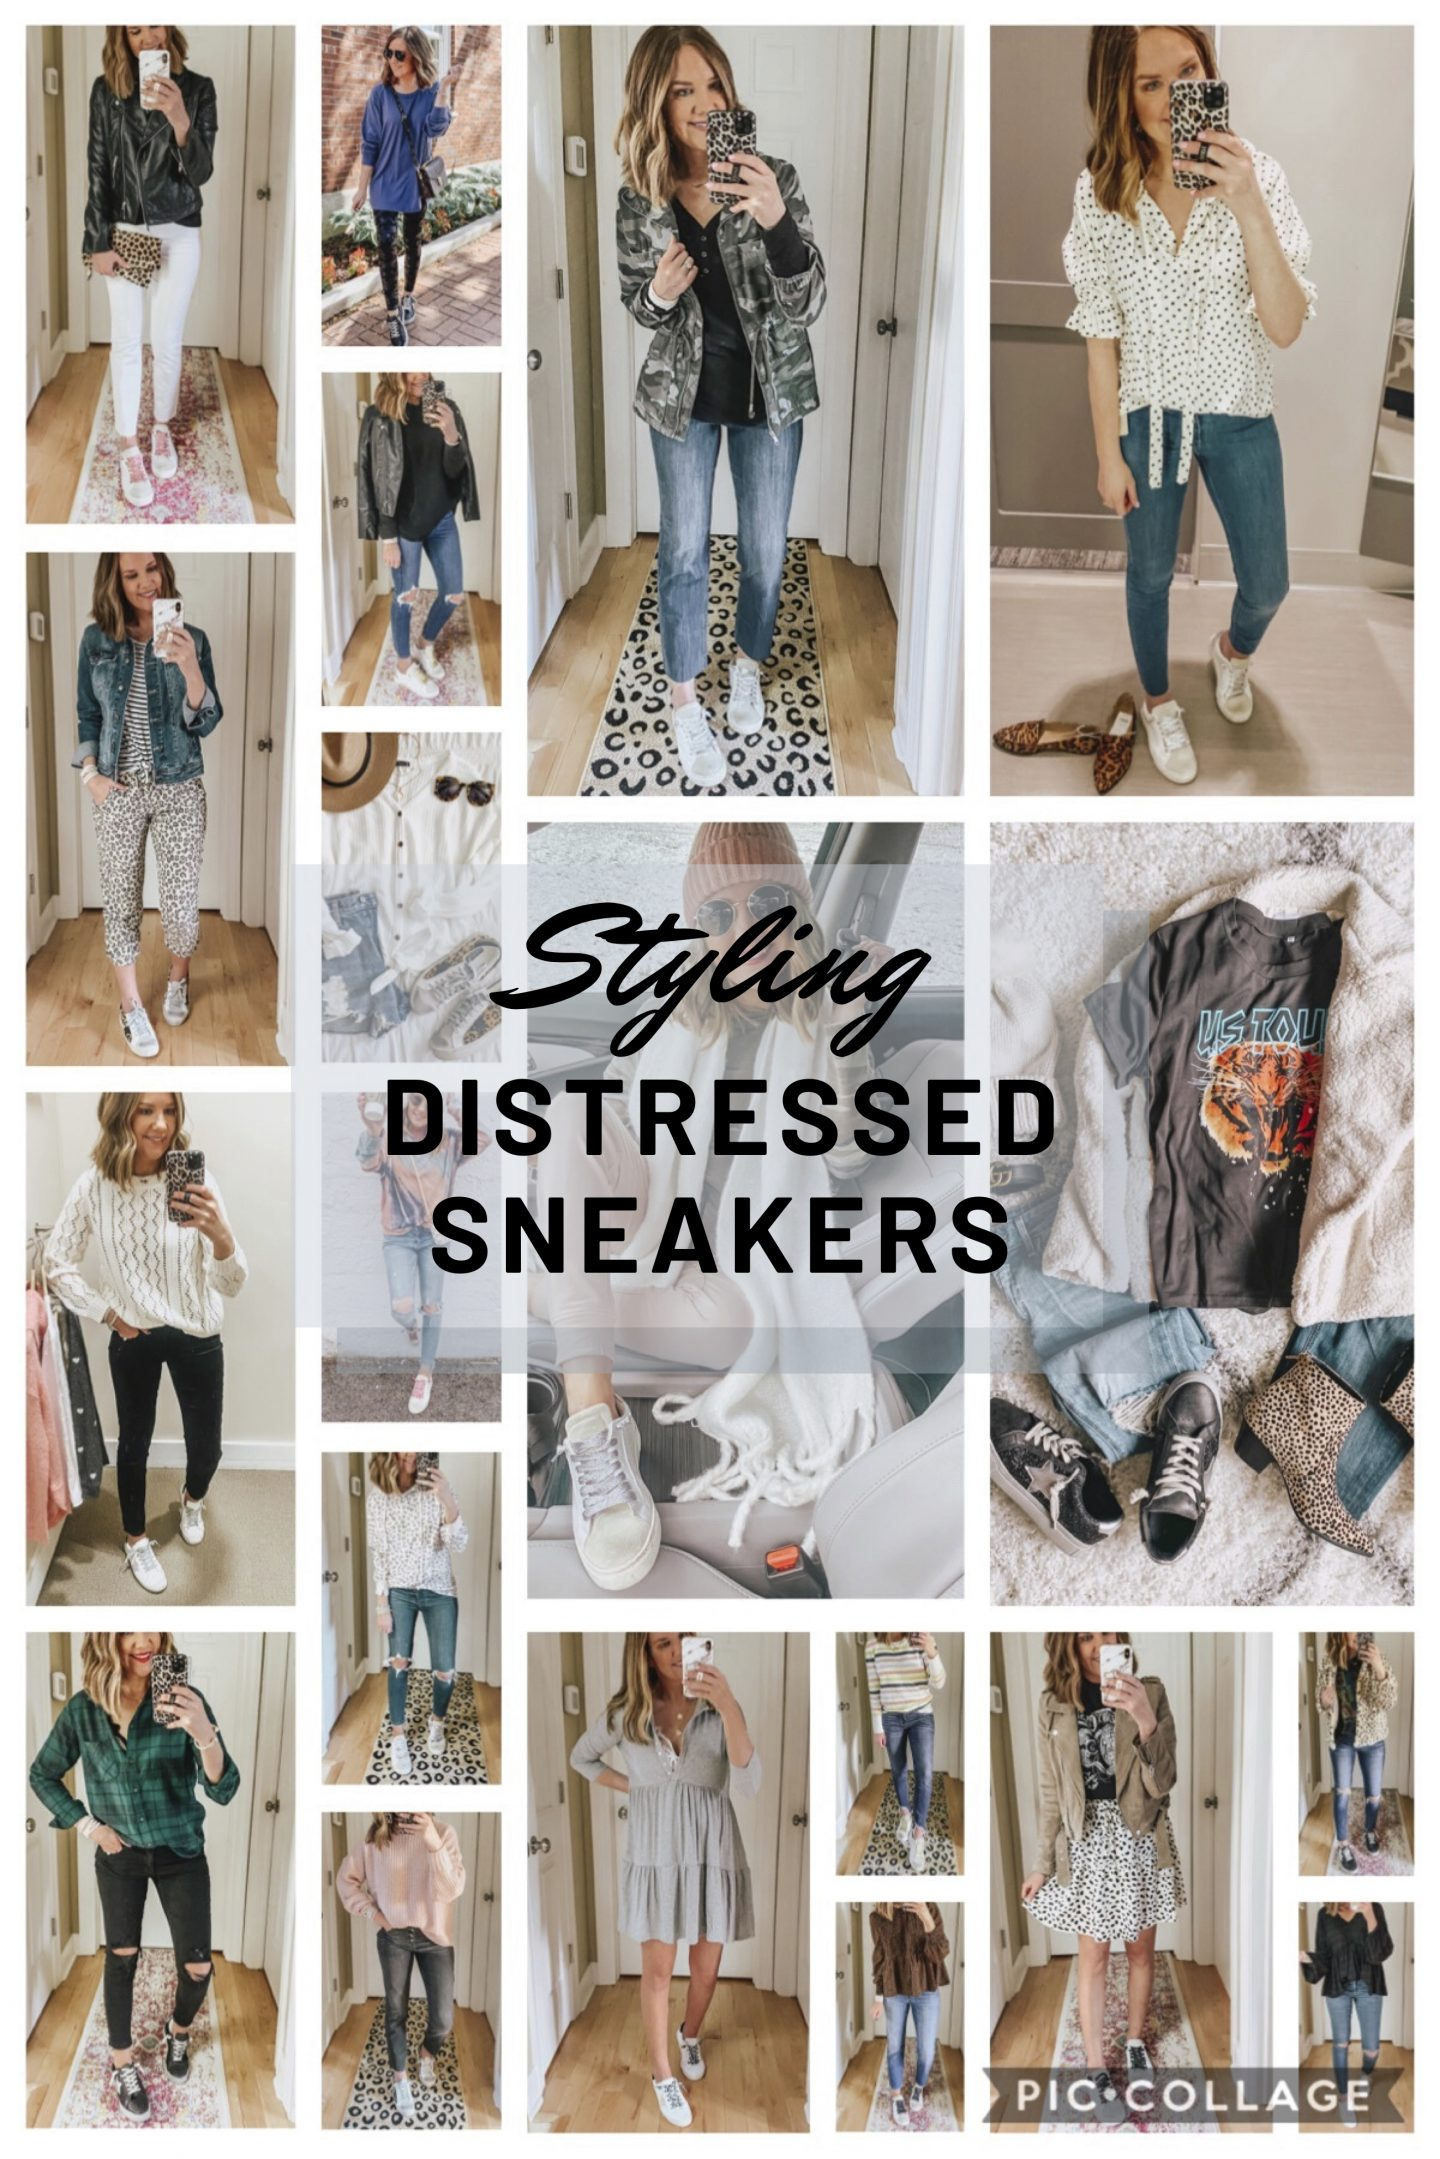 styling-sneakers-golden-goose-dupes-distressed-sneakers